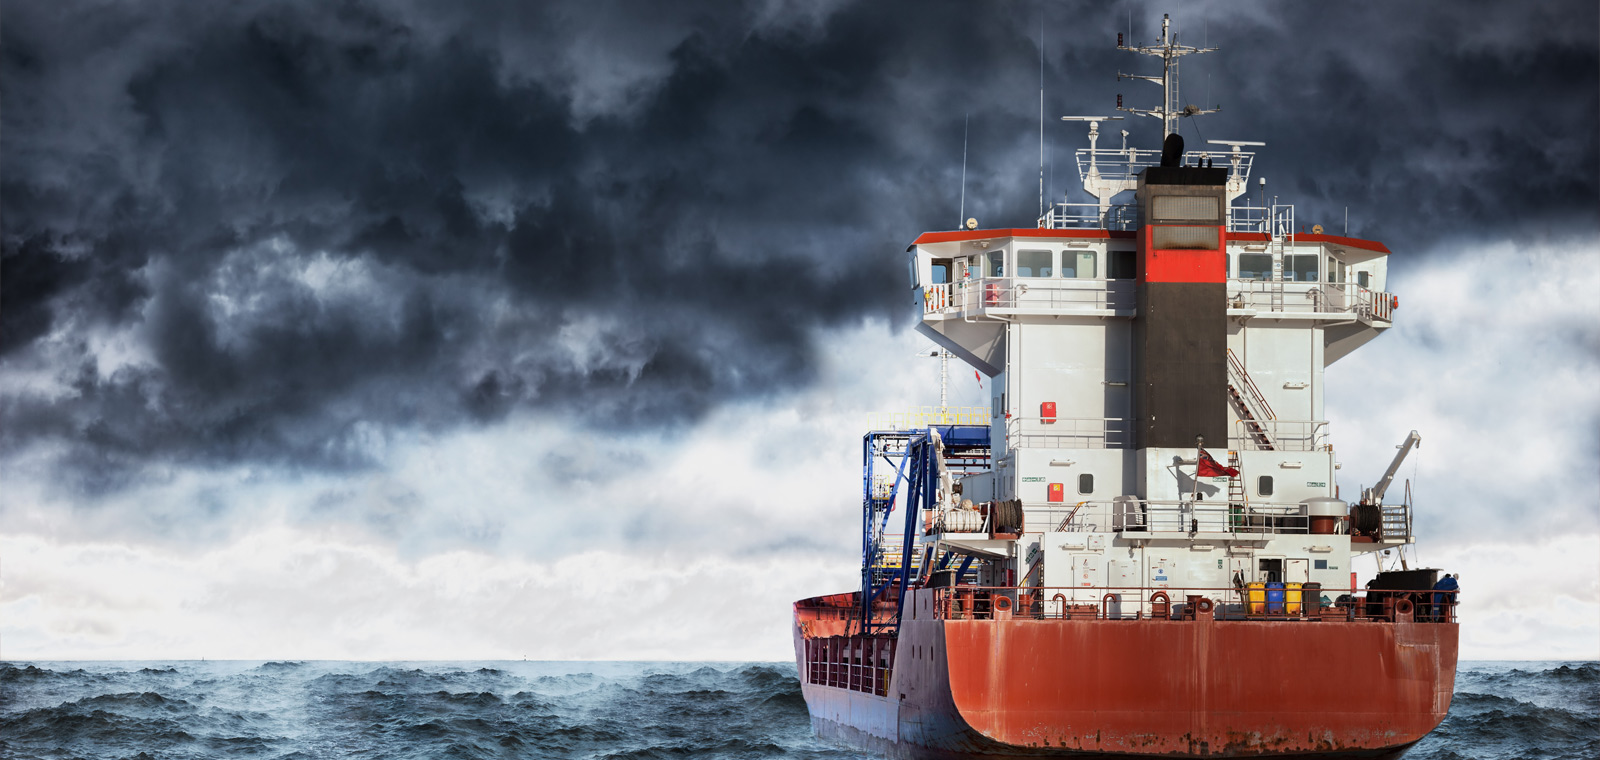 Steering Equity Portfolios Through Stormy Style Seas